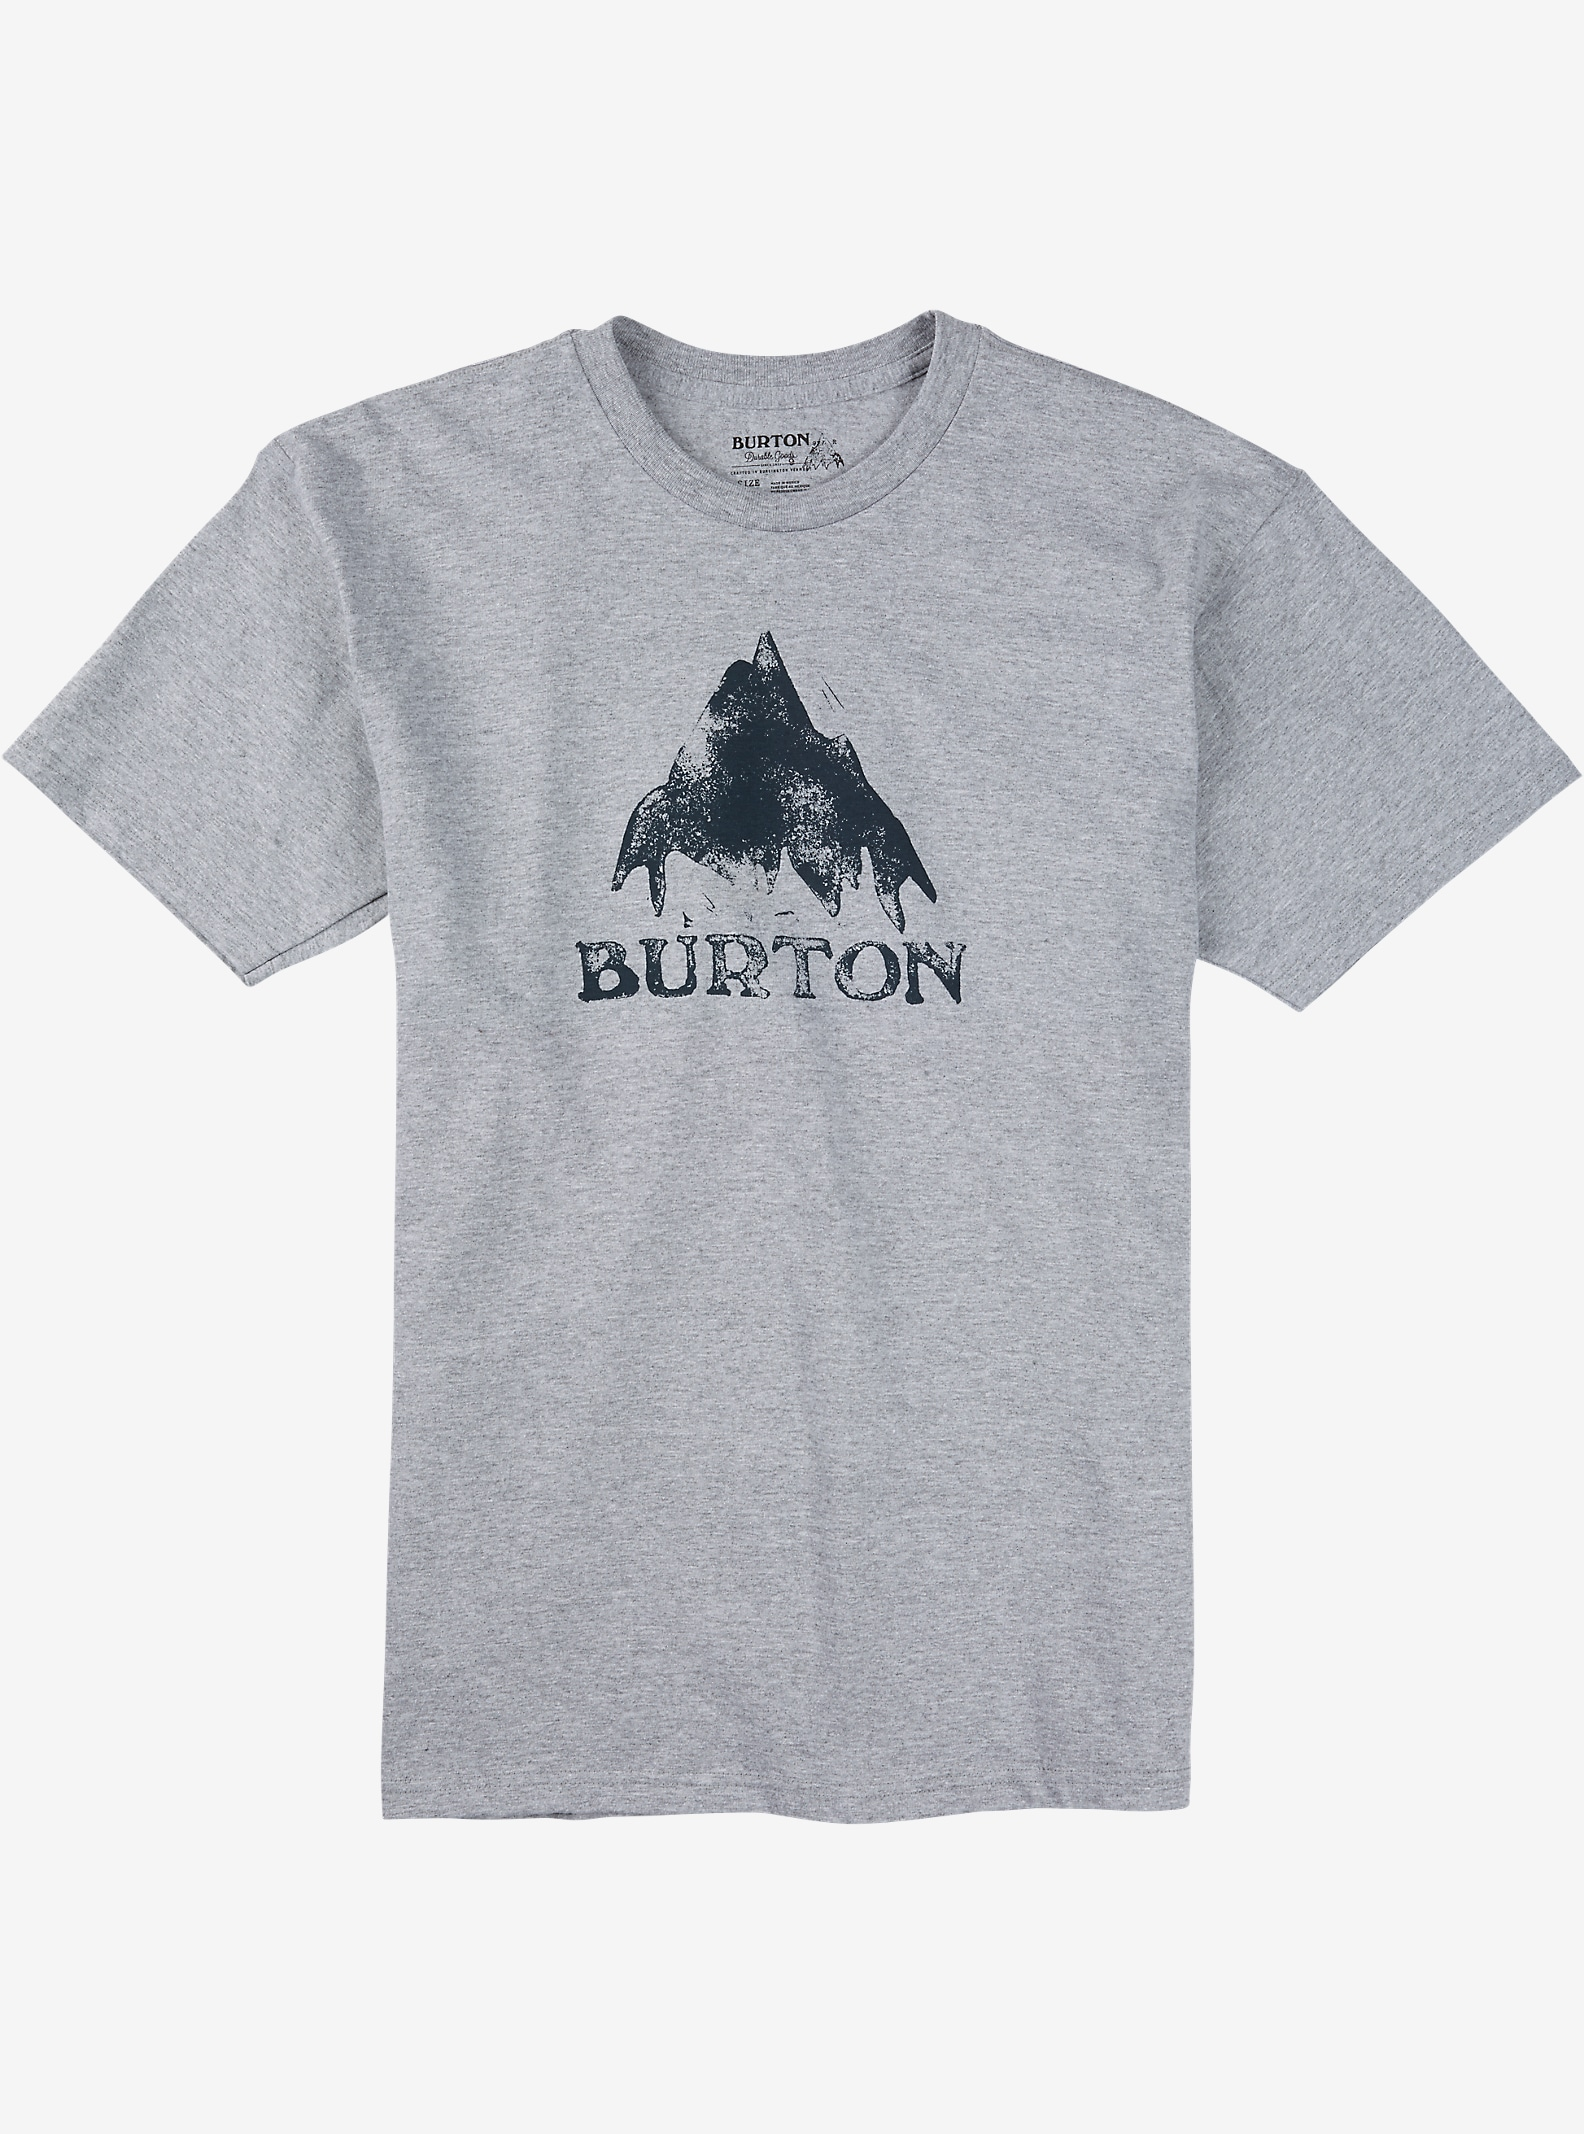 Burton Stamped Mountain Short Sleeve T Shirt shown in Gray Heather